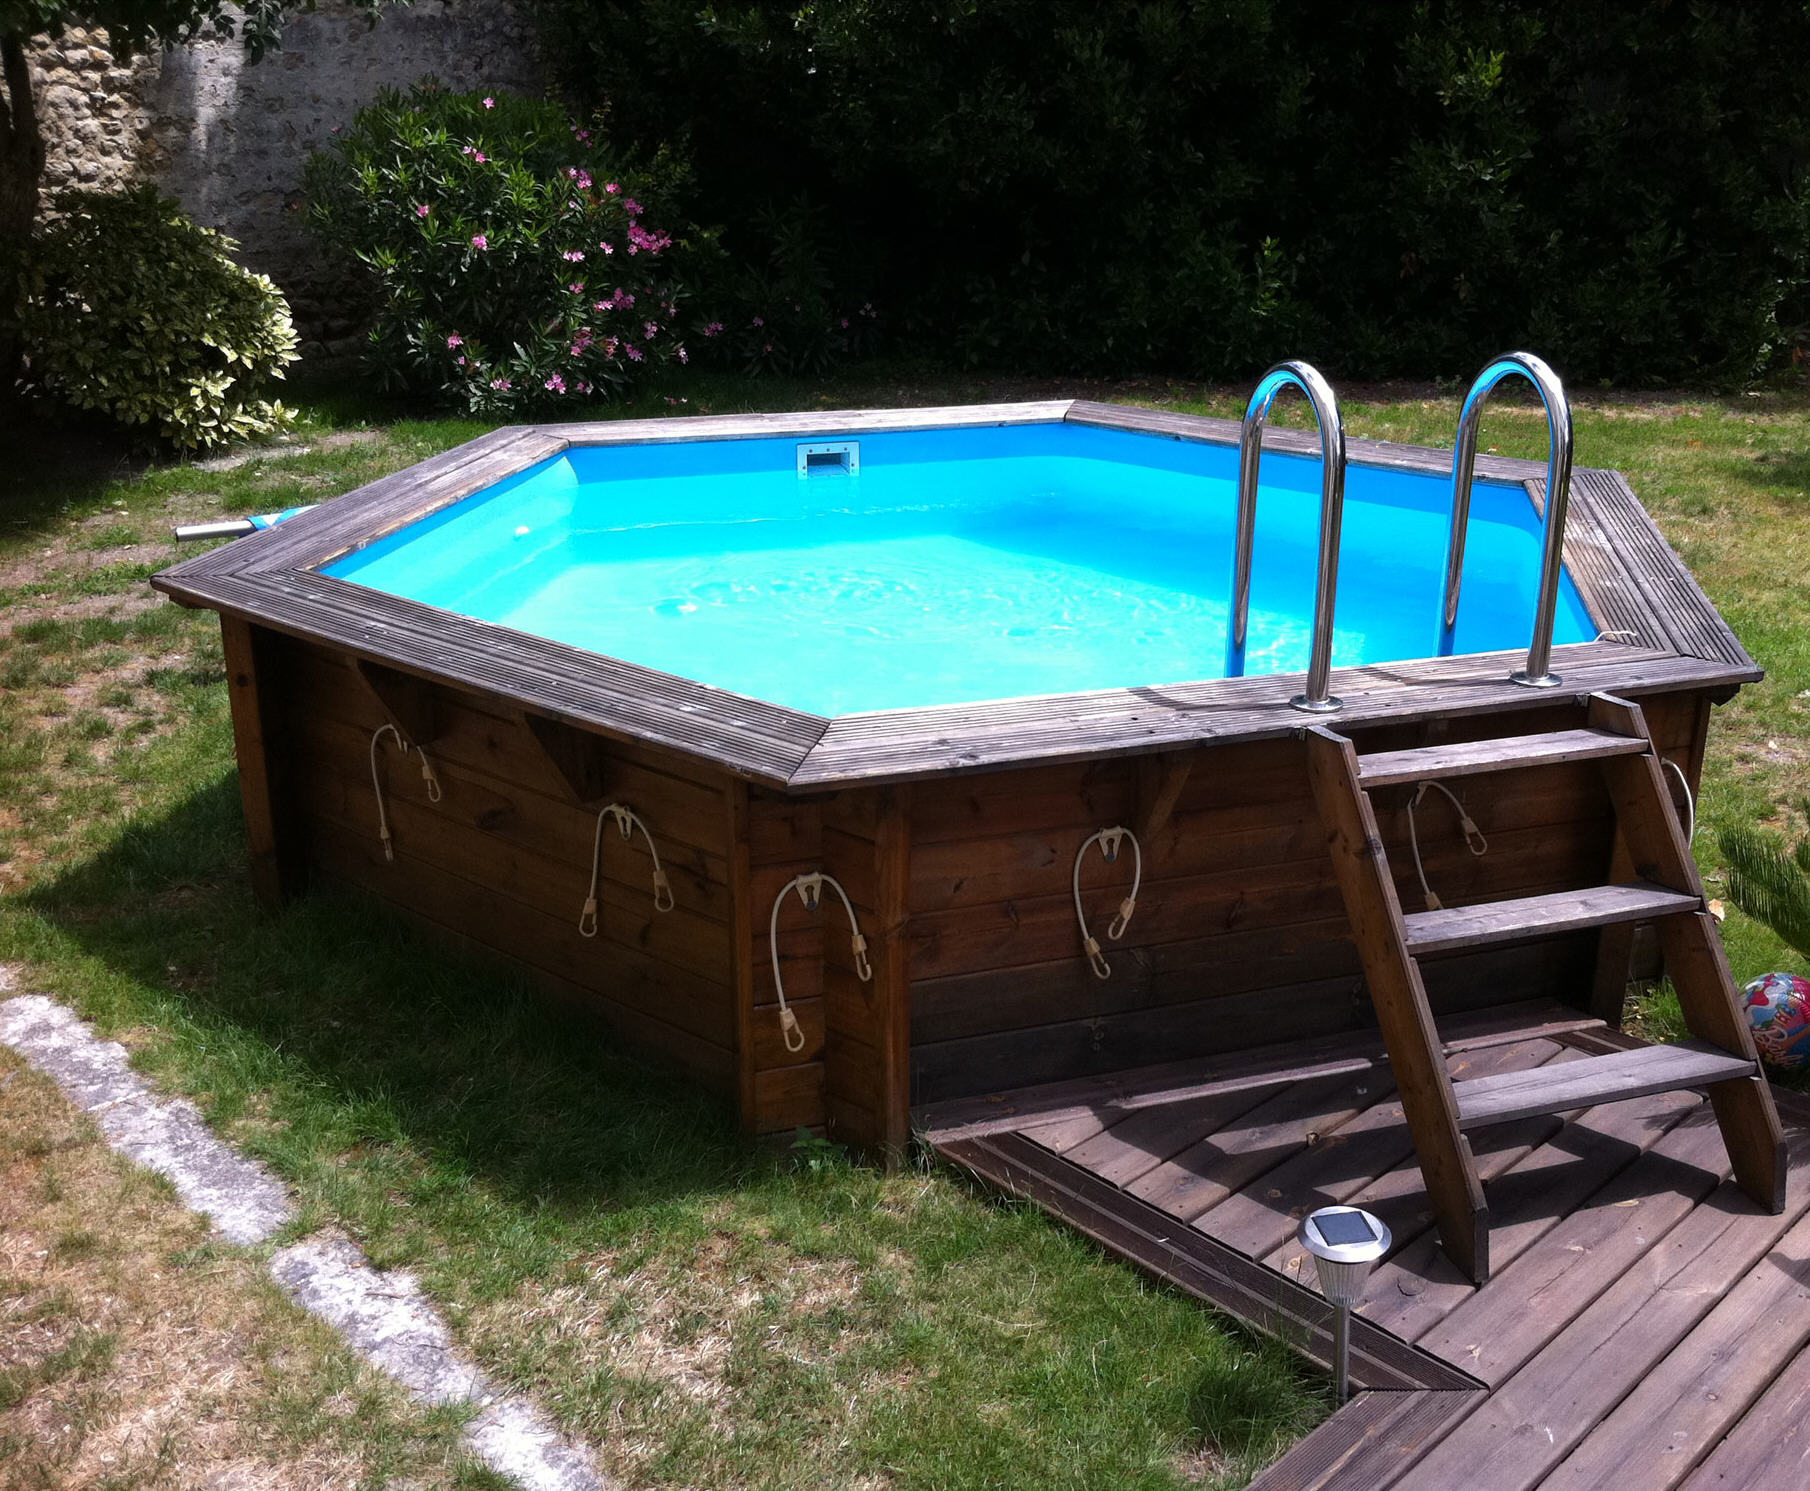 Piscine hors sol promo for Piscine hors sol sans filtration